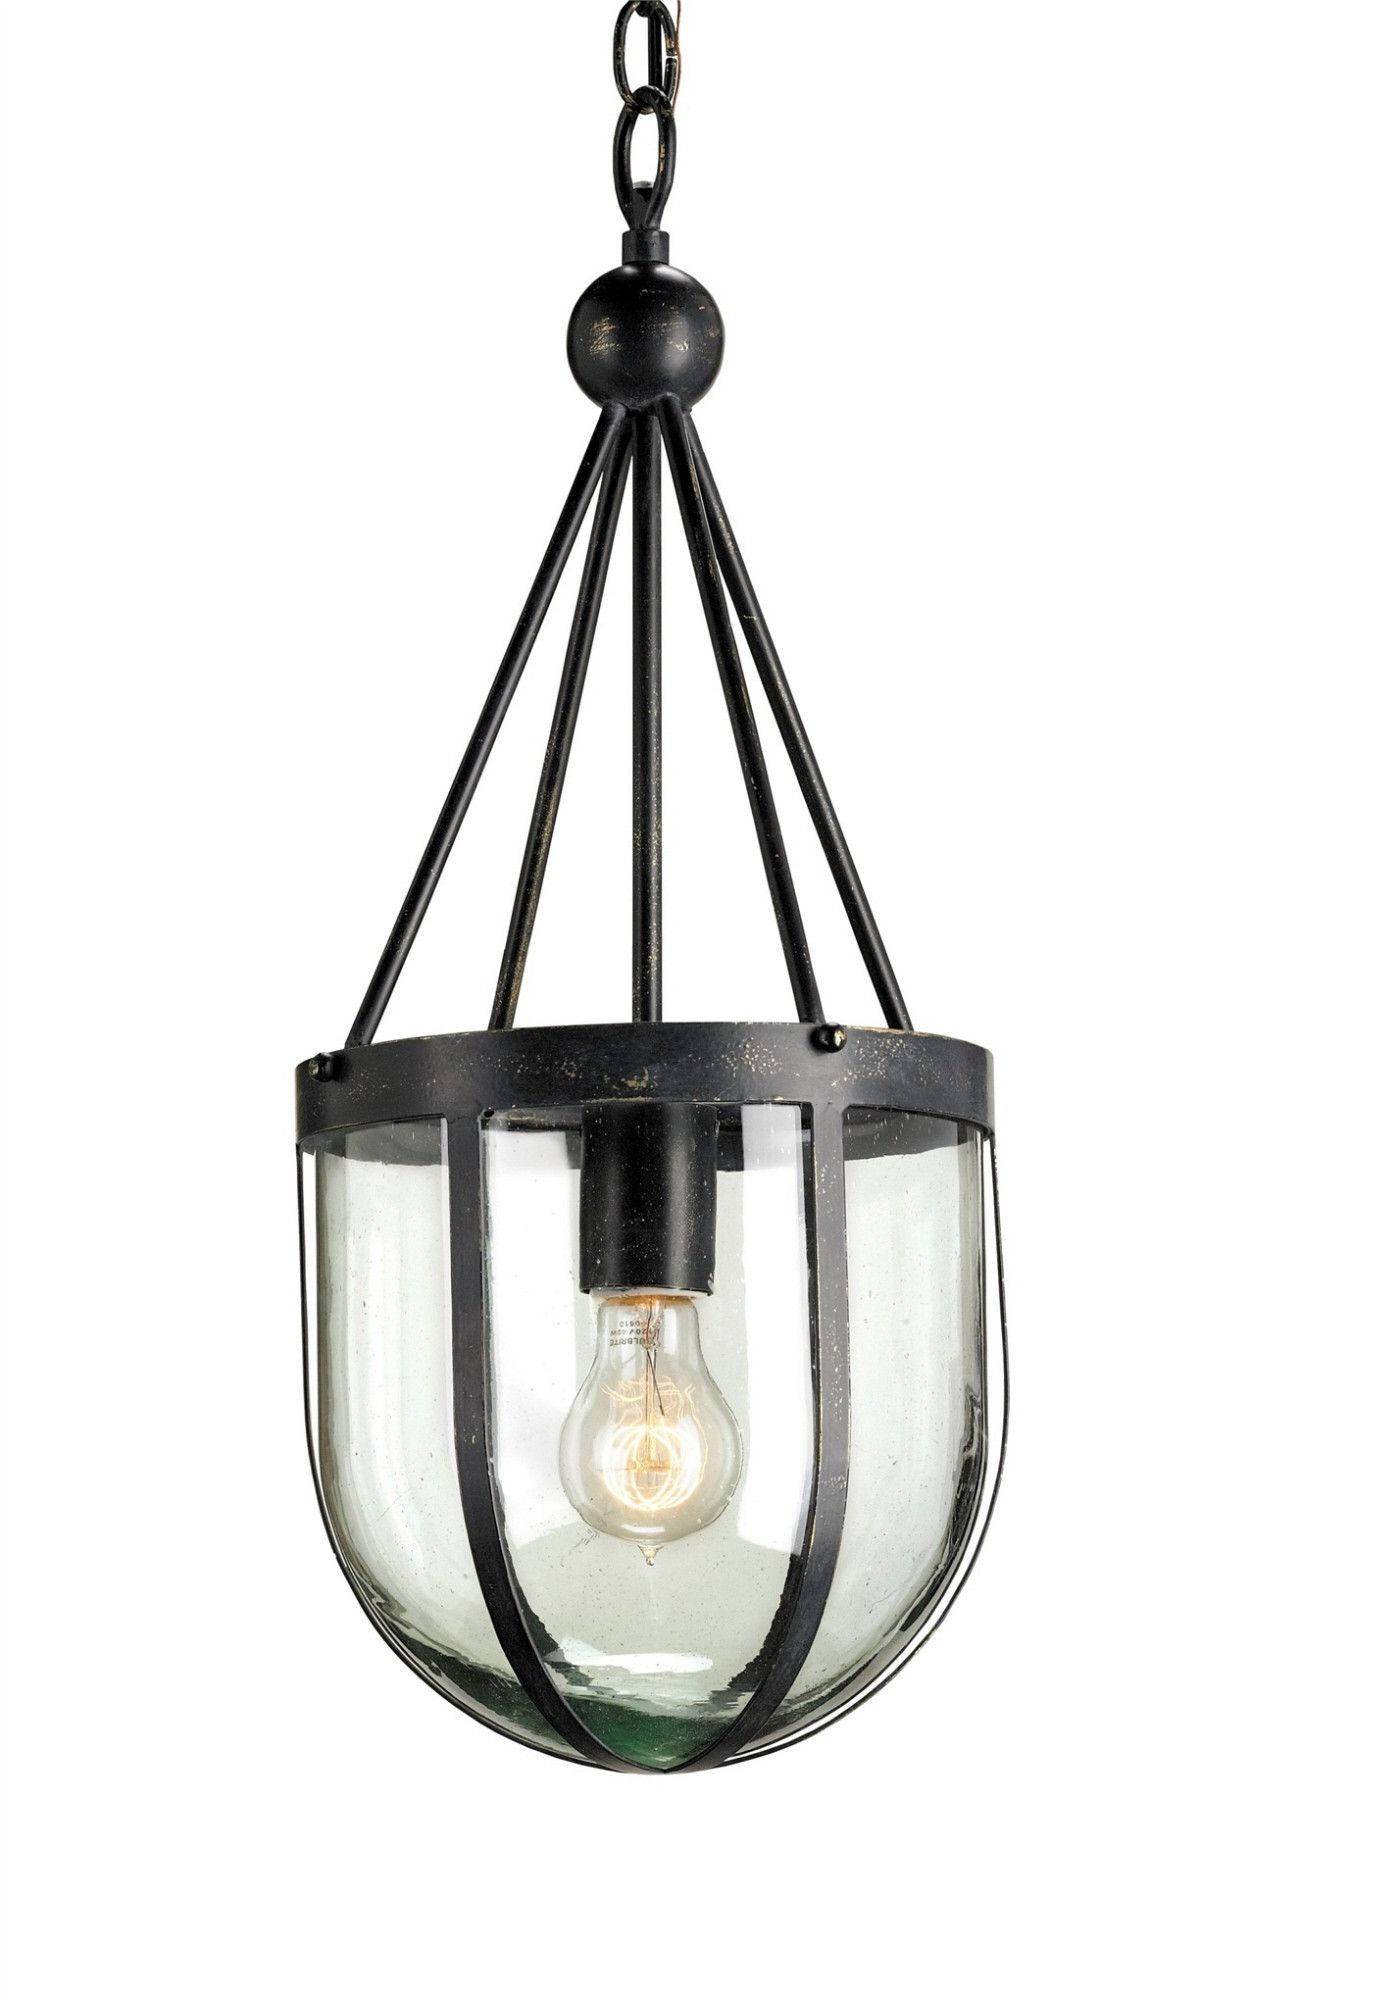 A lightly weathered French Black finish adds a chic industrial feel to the Clifton Pendant's simple wrought iron frame. Its lantern-like styling features glass panes to balance its linear borders. The